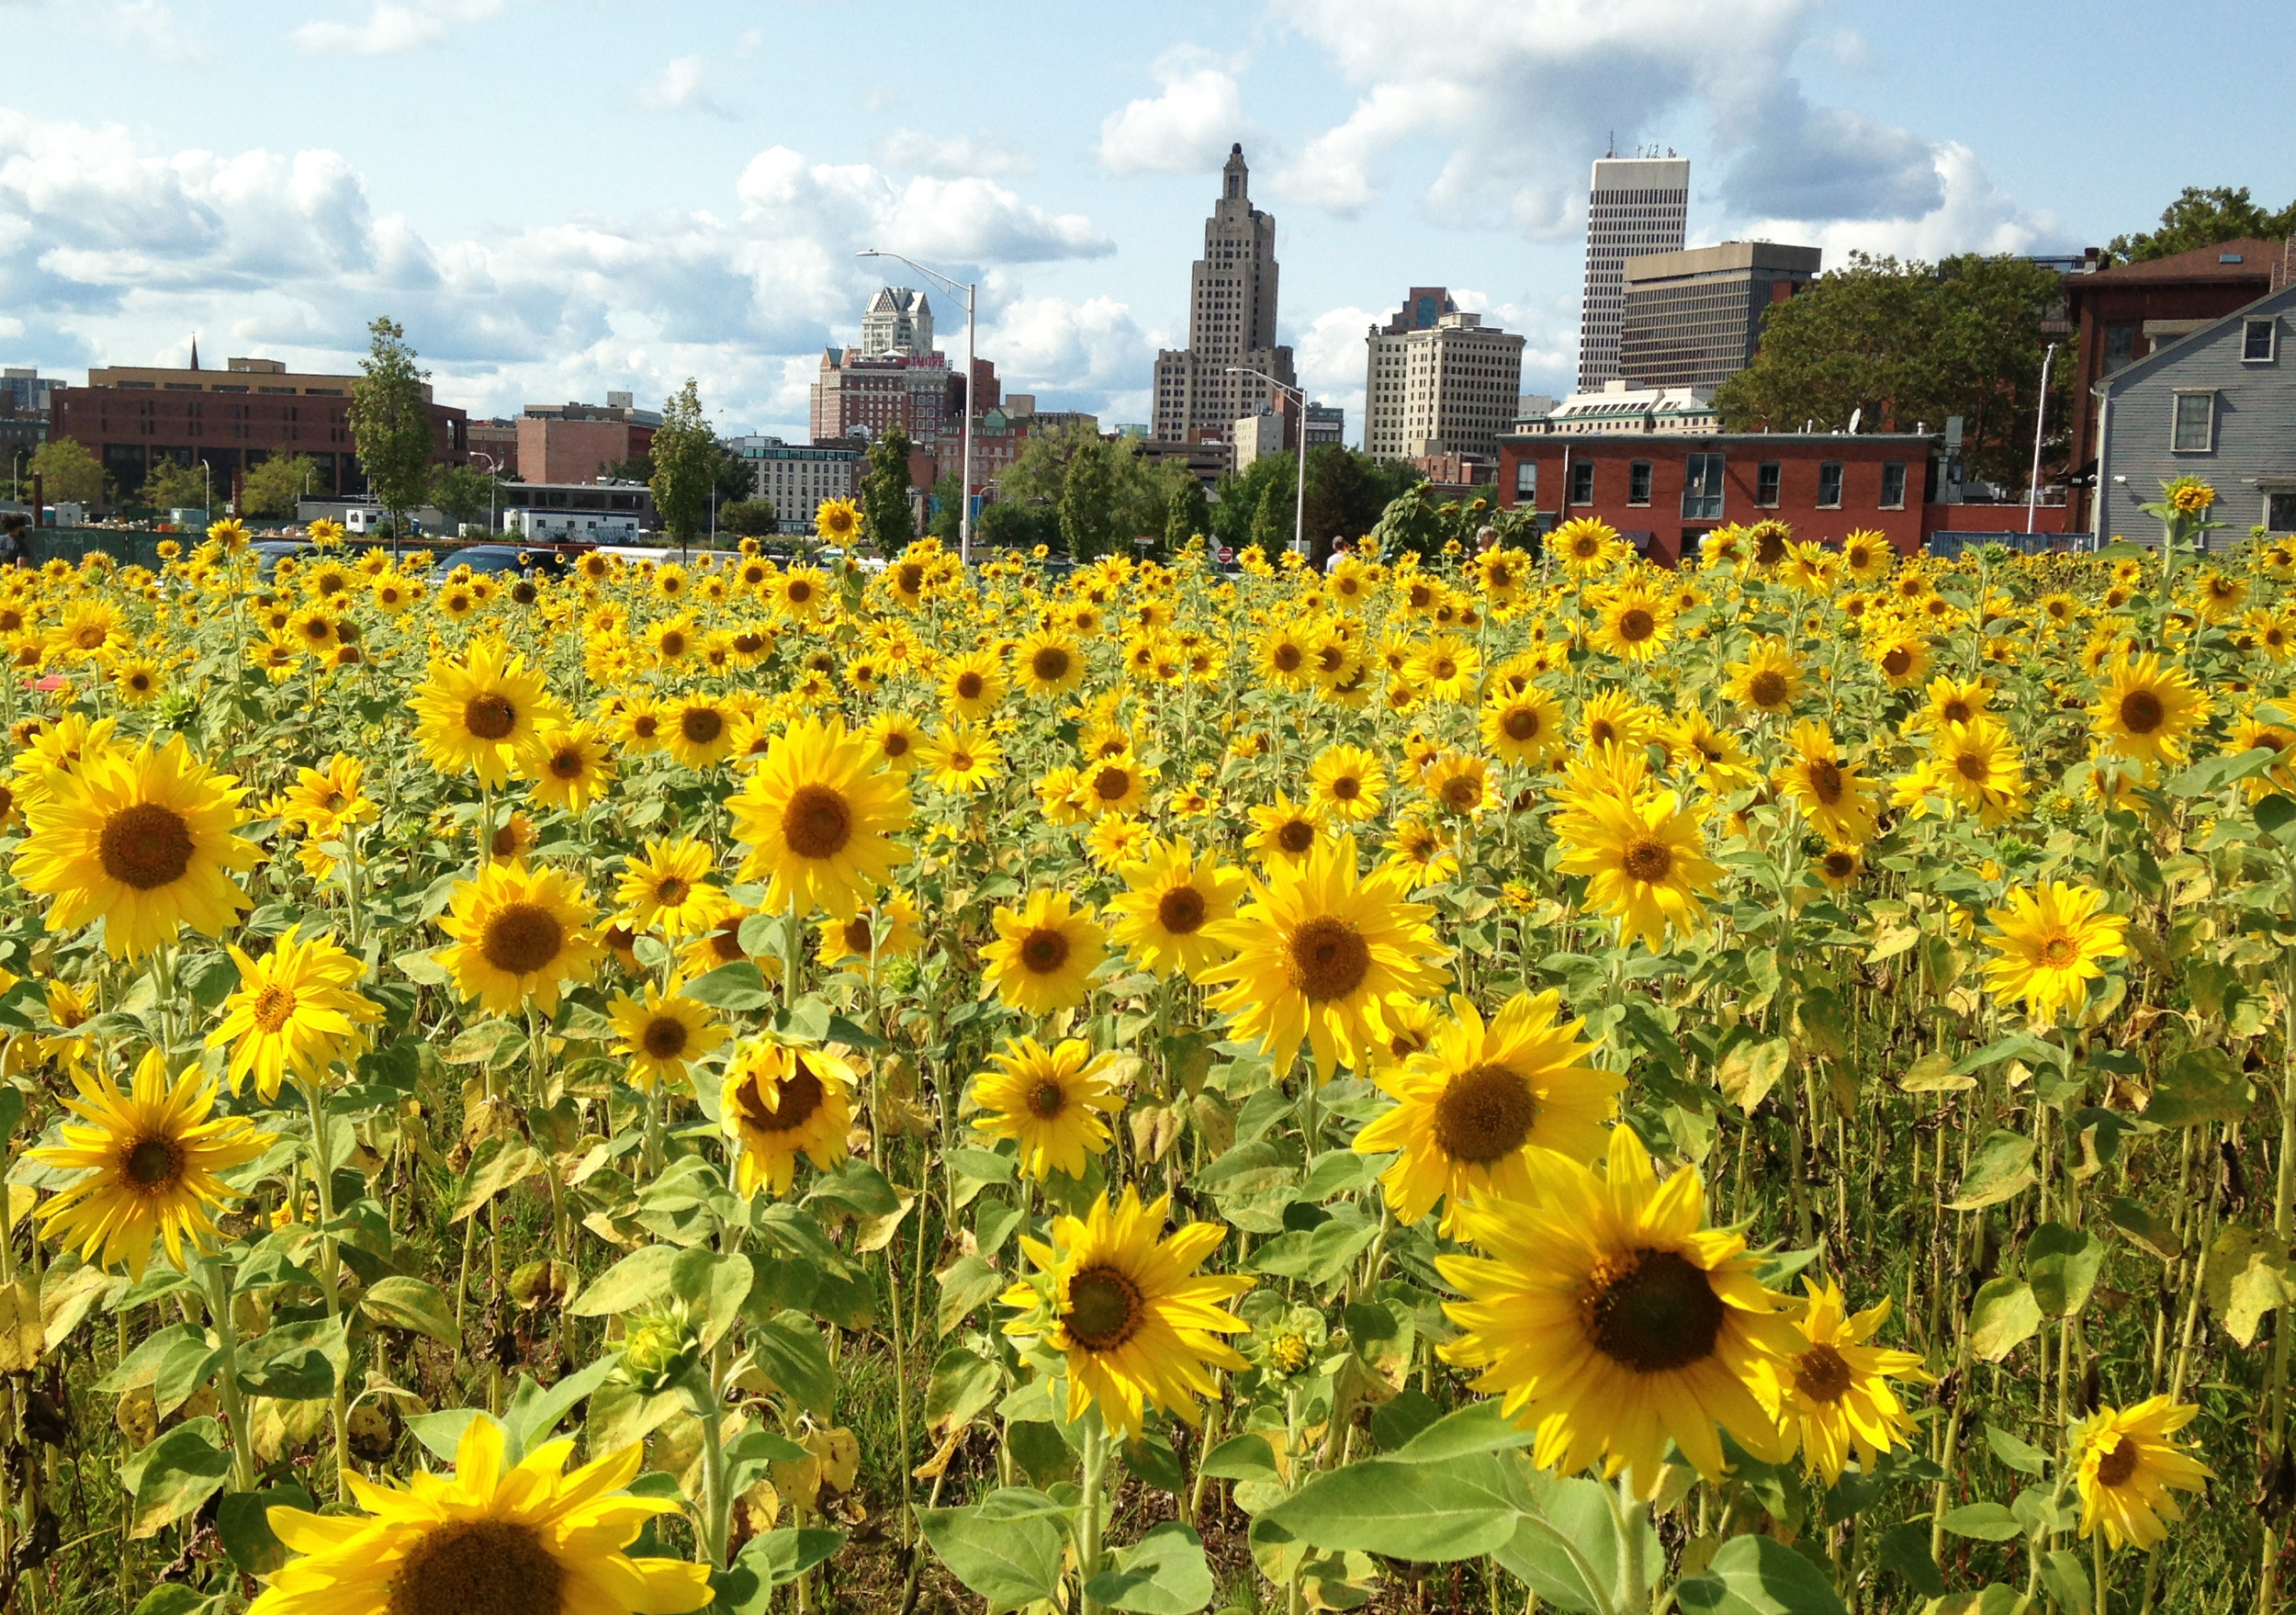 The field of sunflowers in downtown Providence reflects the field of dreams that still inspires new ventures to grow and prosper within the Rhode Island innovation ecosystem, requiring a nurturing of ideas and convergence.